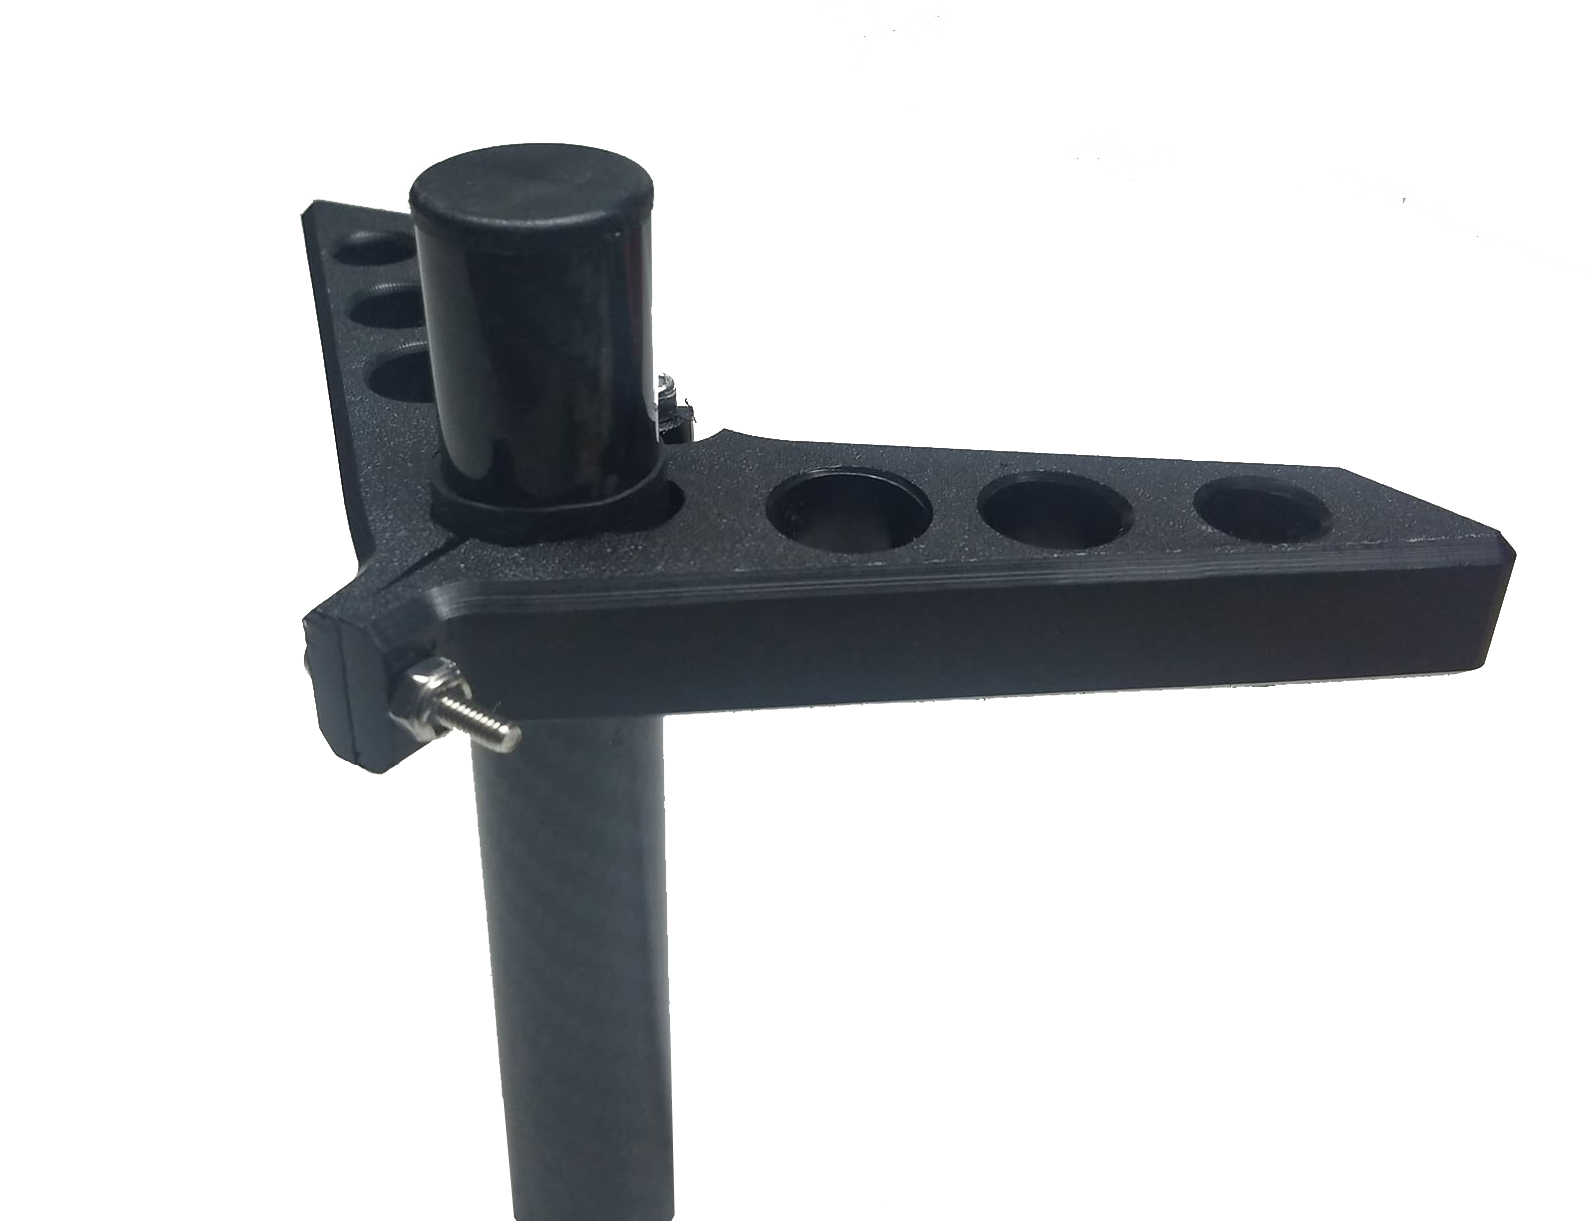 How is it different? - Most steering brackets put the attachment point in-line with the motor shaft. The V-Force puts the attachment point 4 inches behind the motor shaft, which means a dramatic increase in the turning radius of the motor, and your kayak.